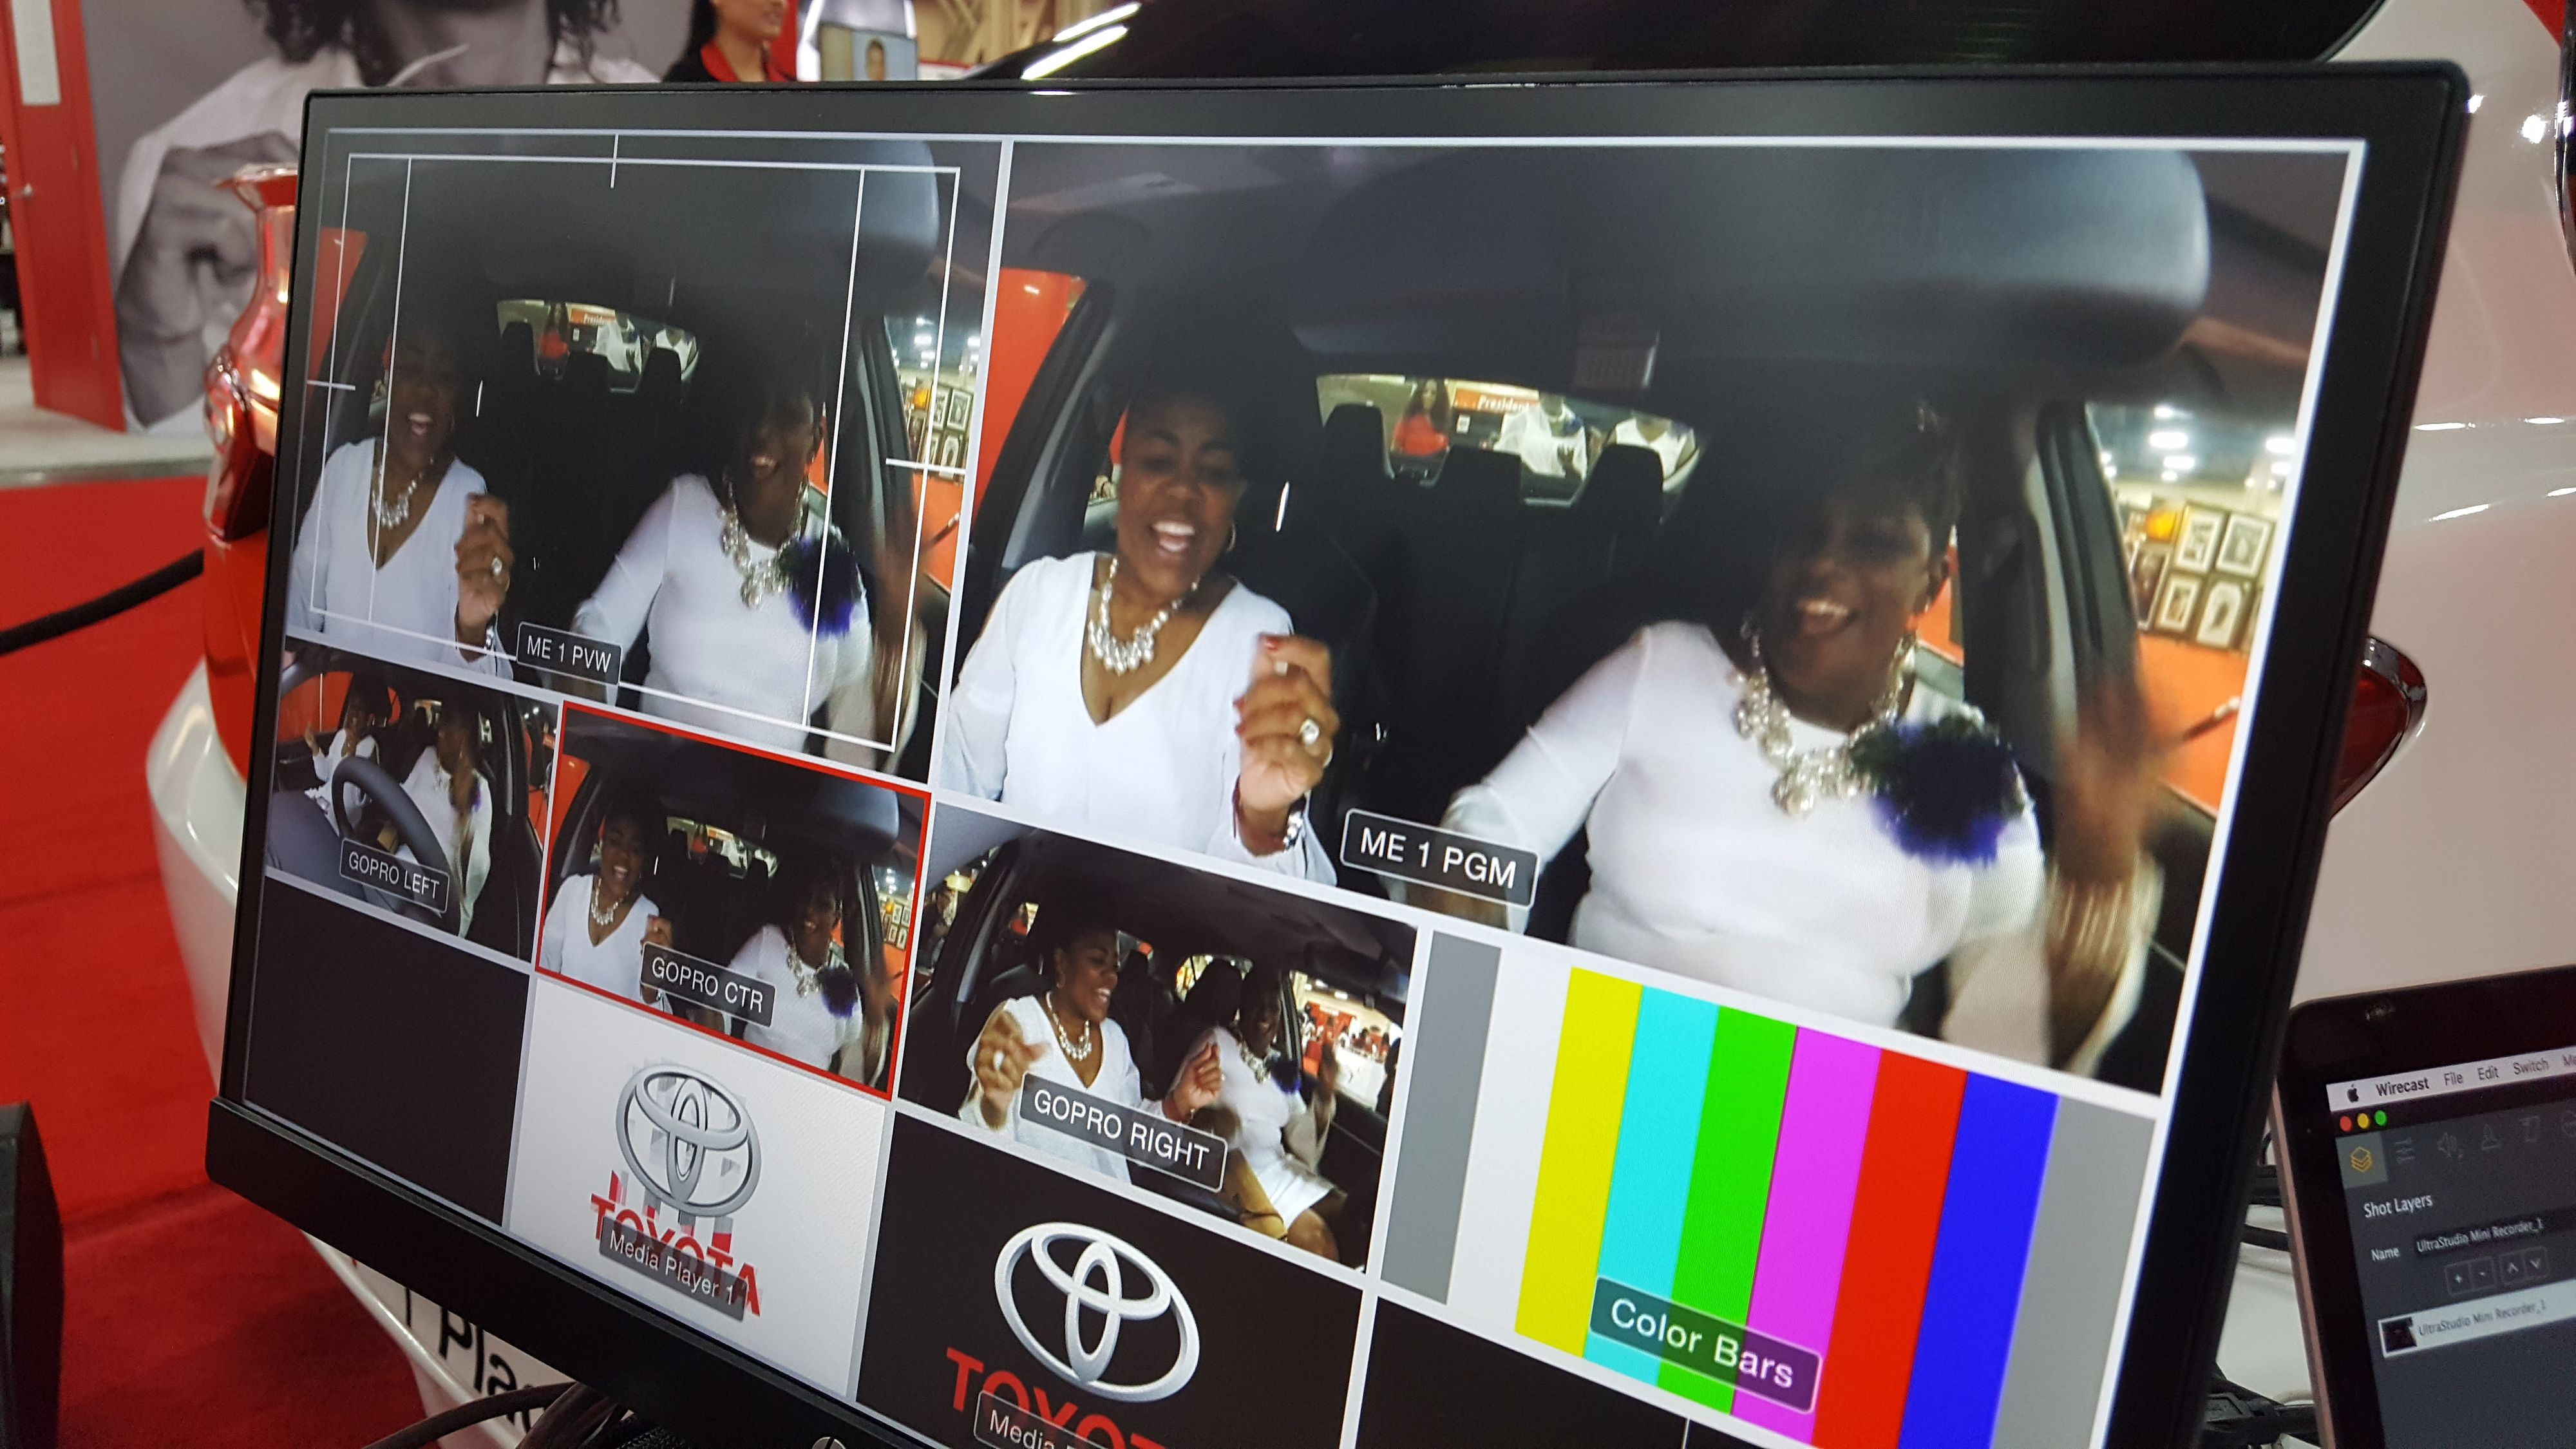 Video switcher screen of Carpool Karaoke at a convention